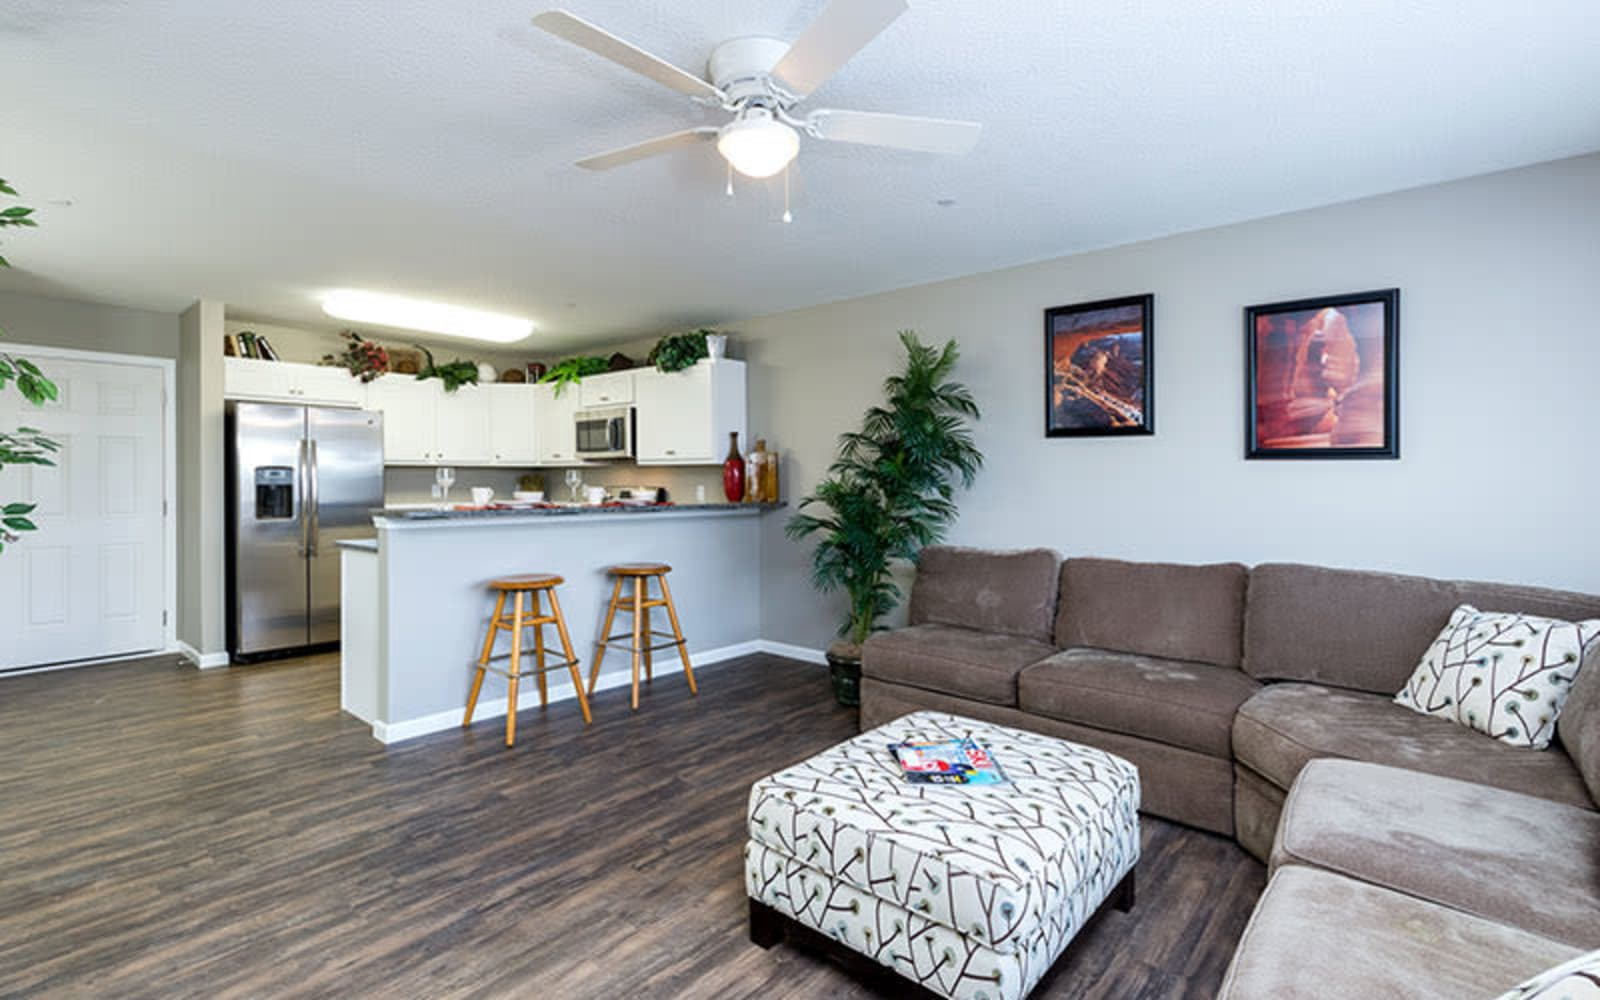 Wood flooring in an apartment kitchen and living room at The Landing of Clinton in Clinton, Iowa